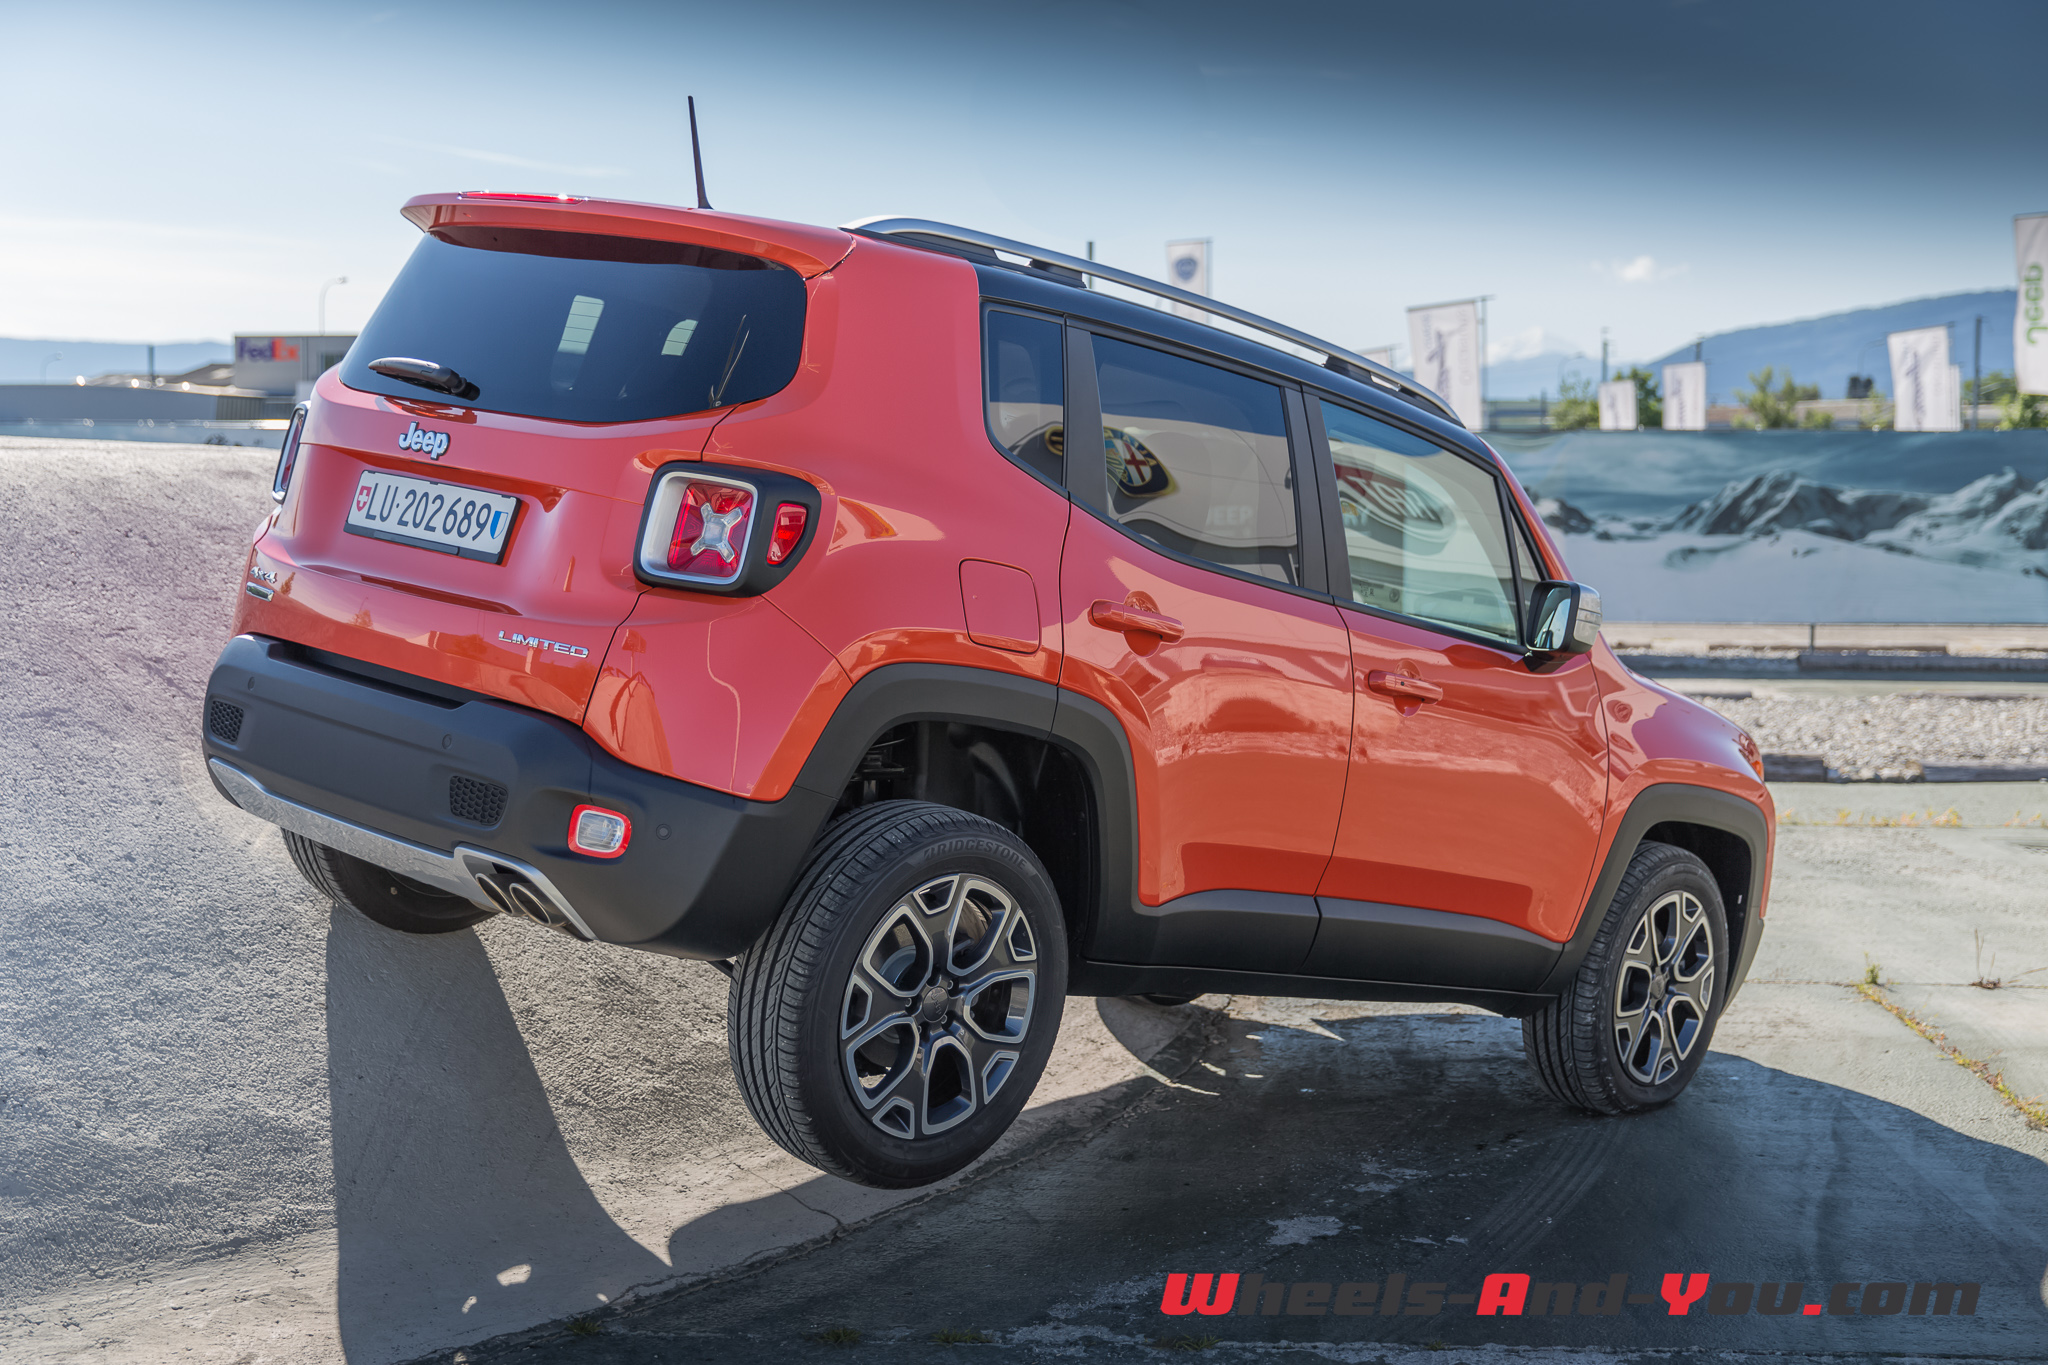 essai jeep renegade essence 170cv blog sur les voitures. Black Bedroom Furniture Sets. Home Design Ideas